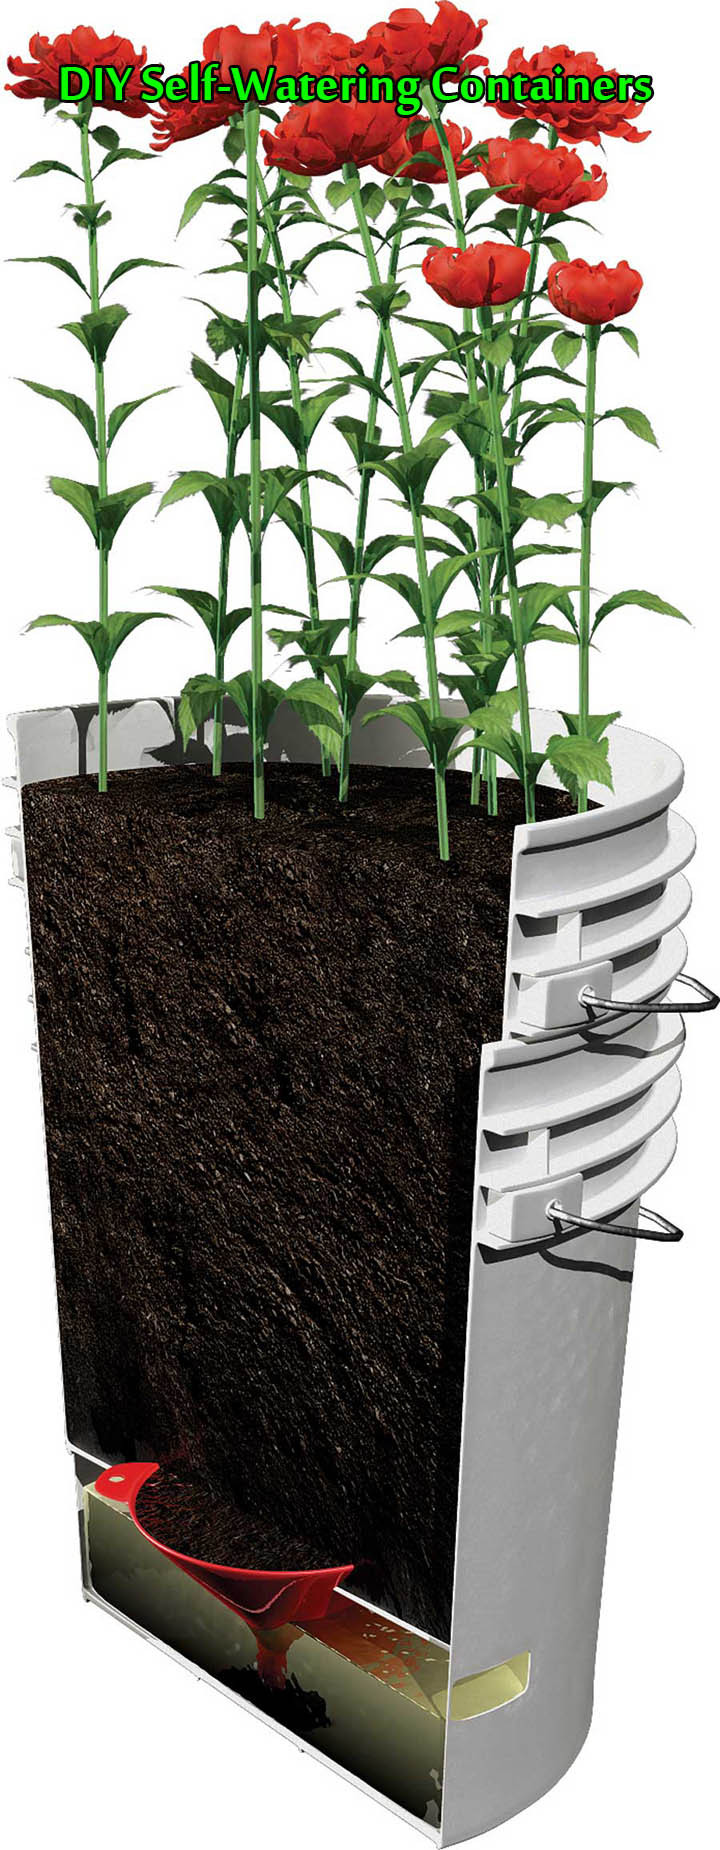 Best ideas about Self Watering Pots DIY . Save or Pin DIY Self Watering Containers Now.